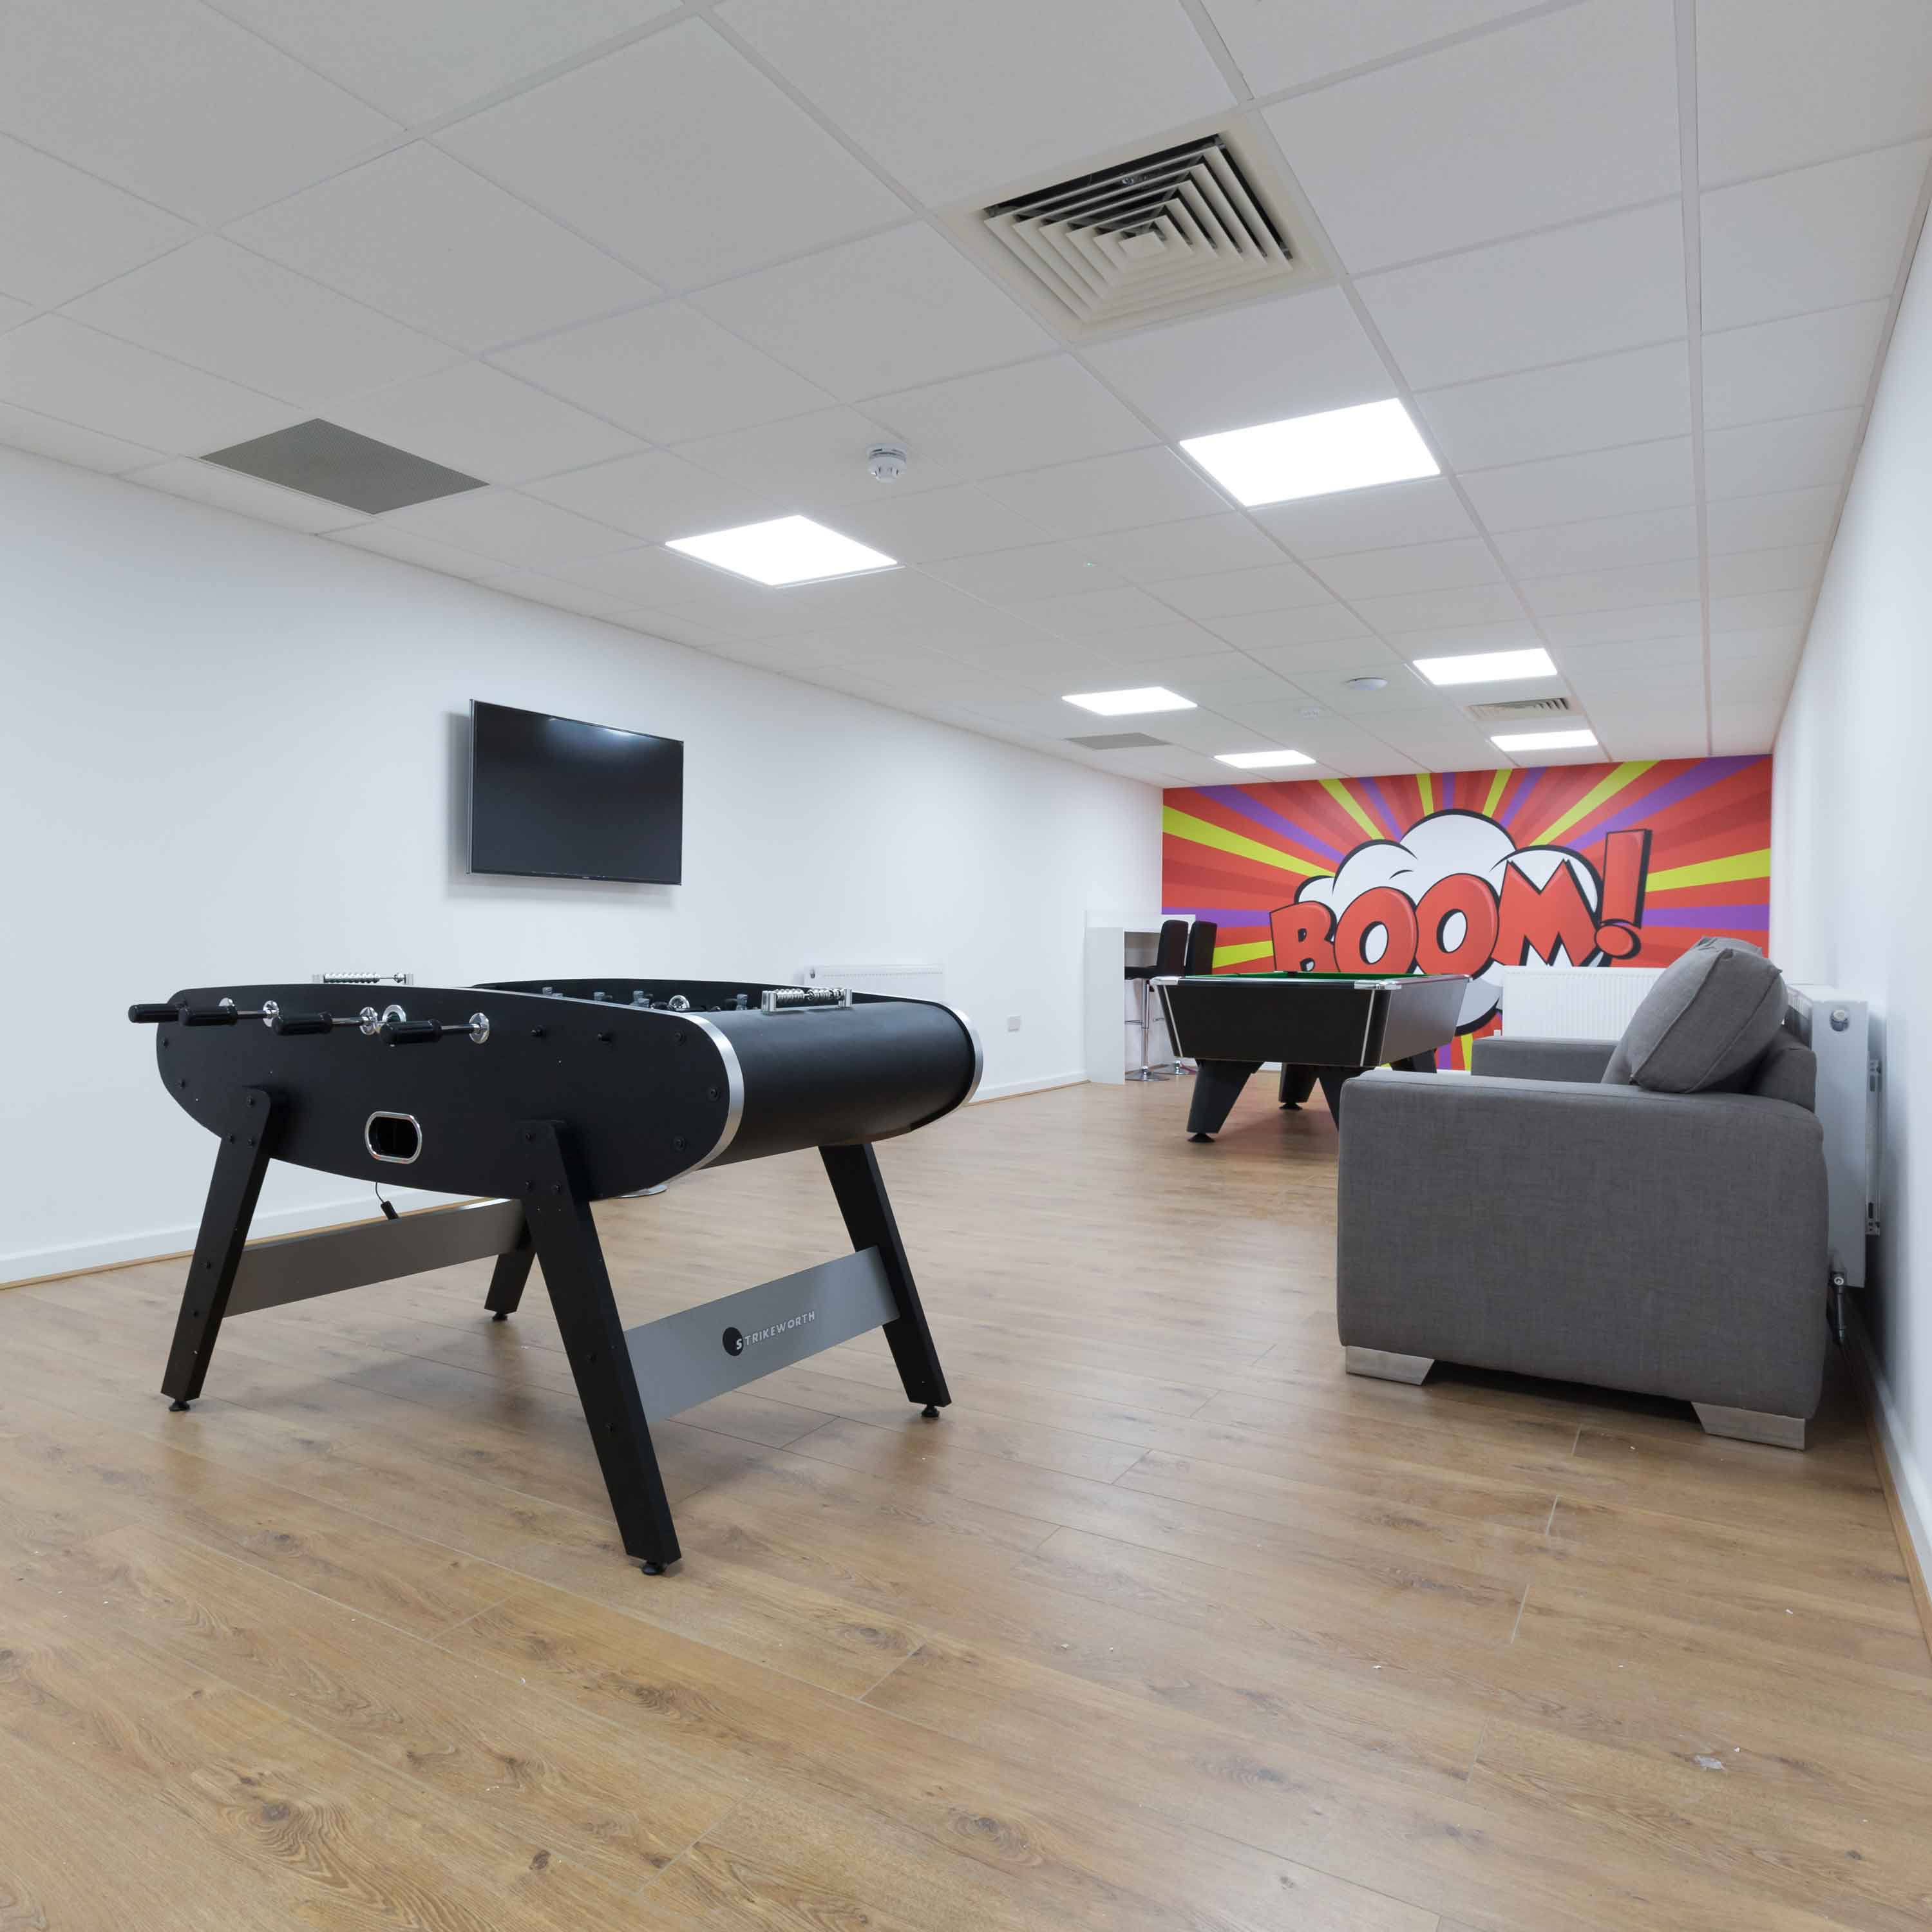 student accommodation newcastle under lyme student lounge basement pool table football common room